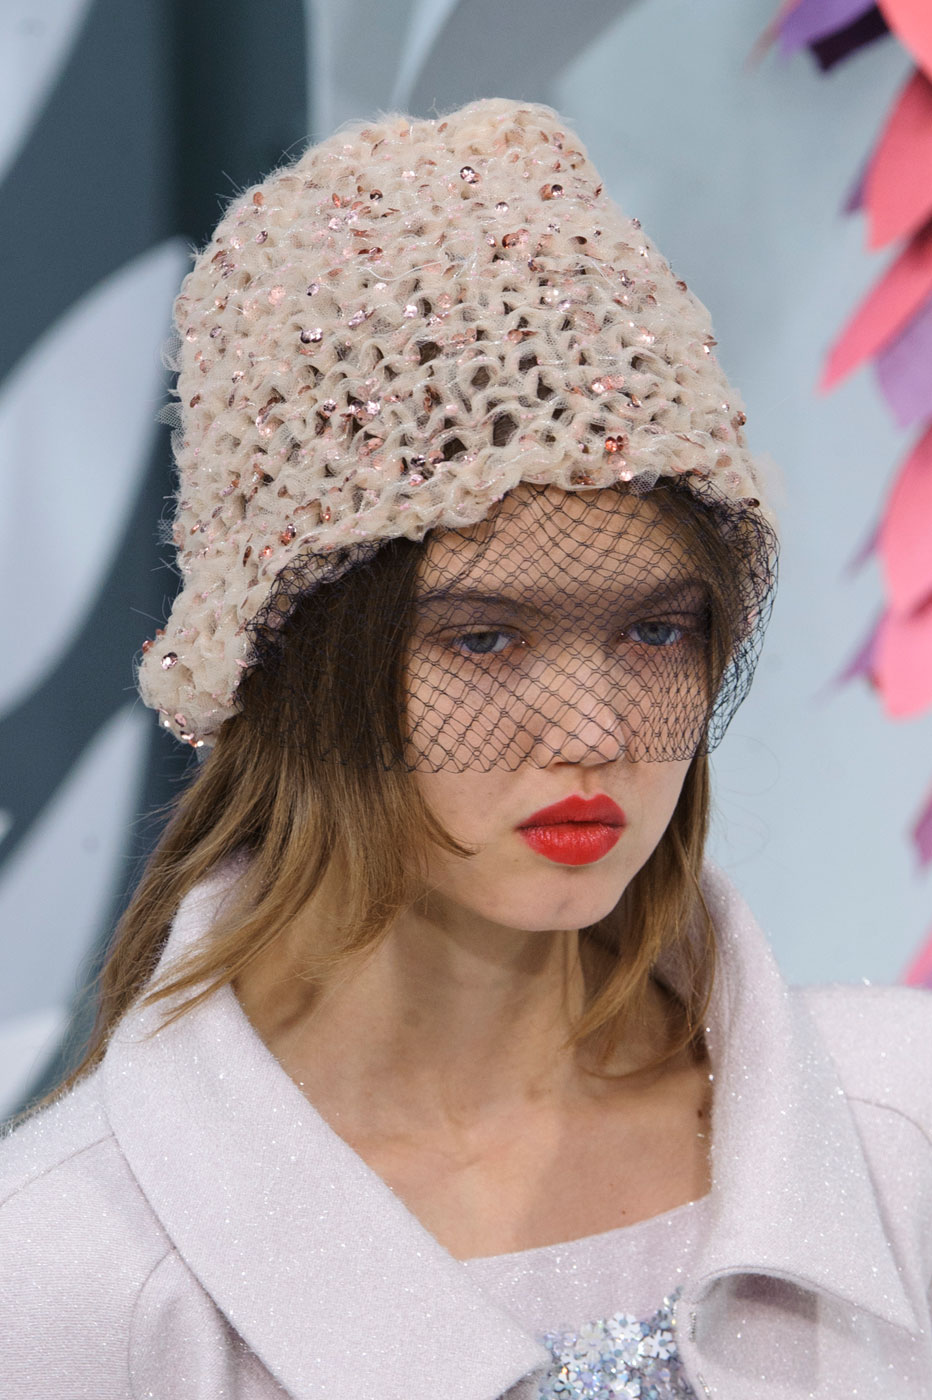 Chanel-fashion-runway-show-close-ups-haute-couture-paris-spring-summer-2015-the-impression-044